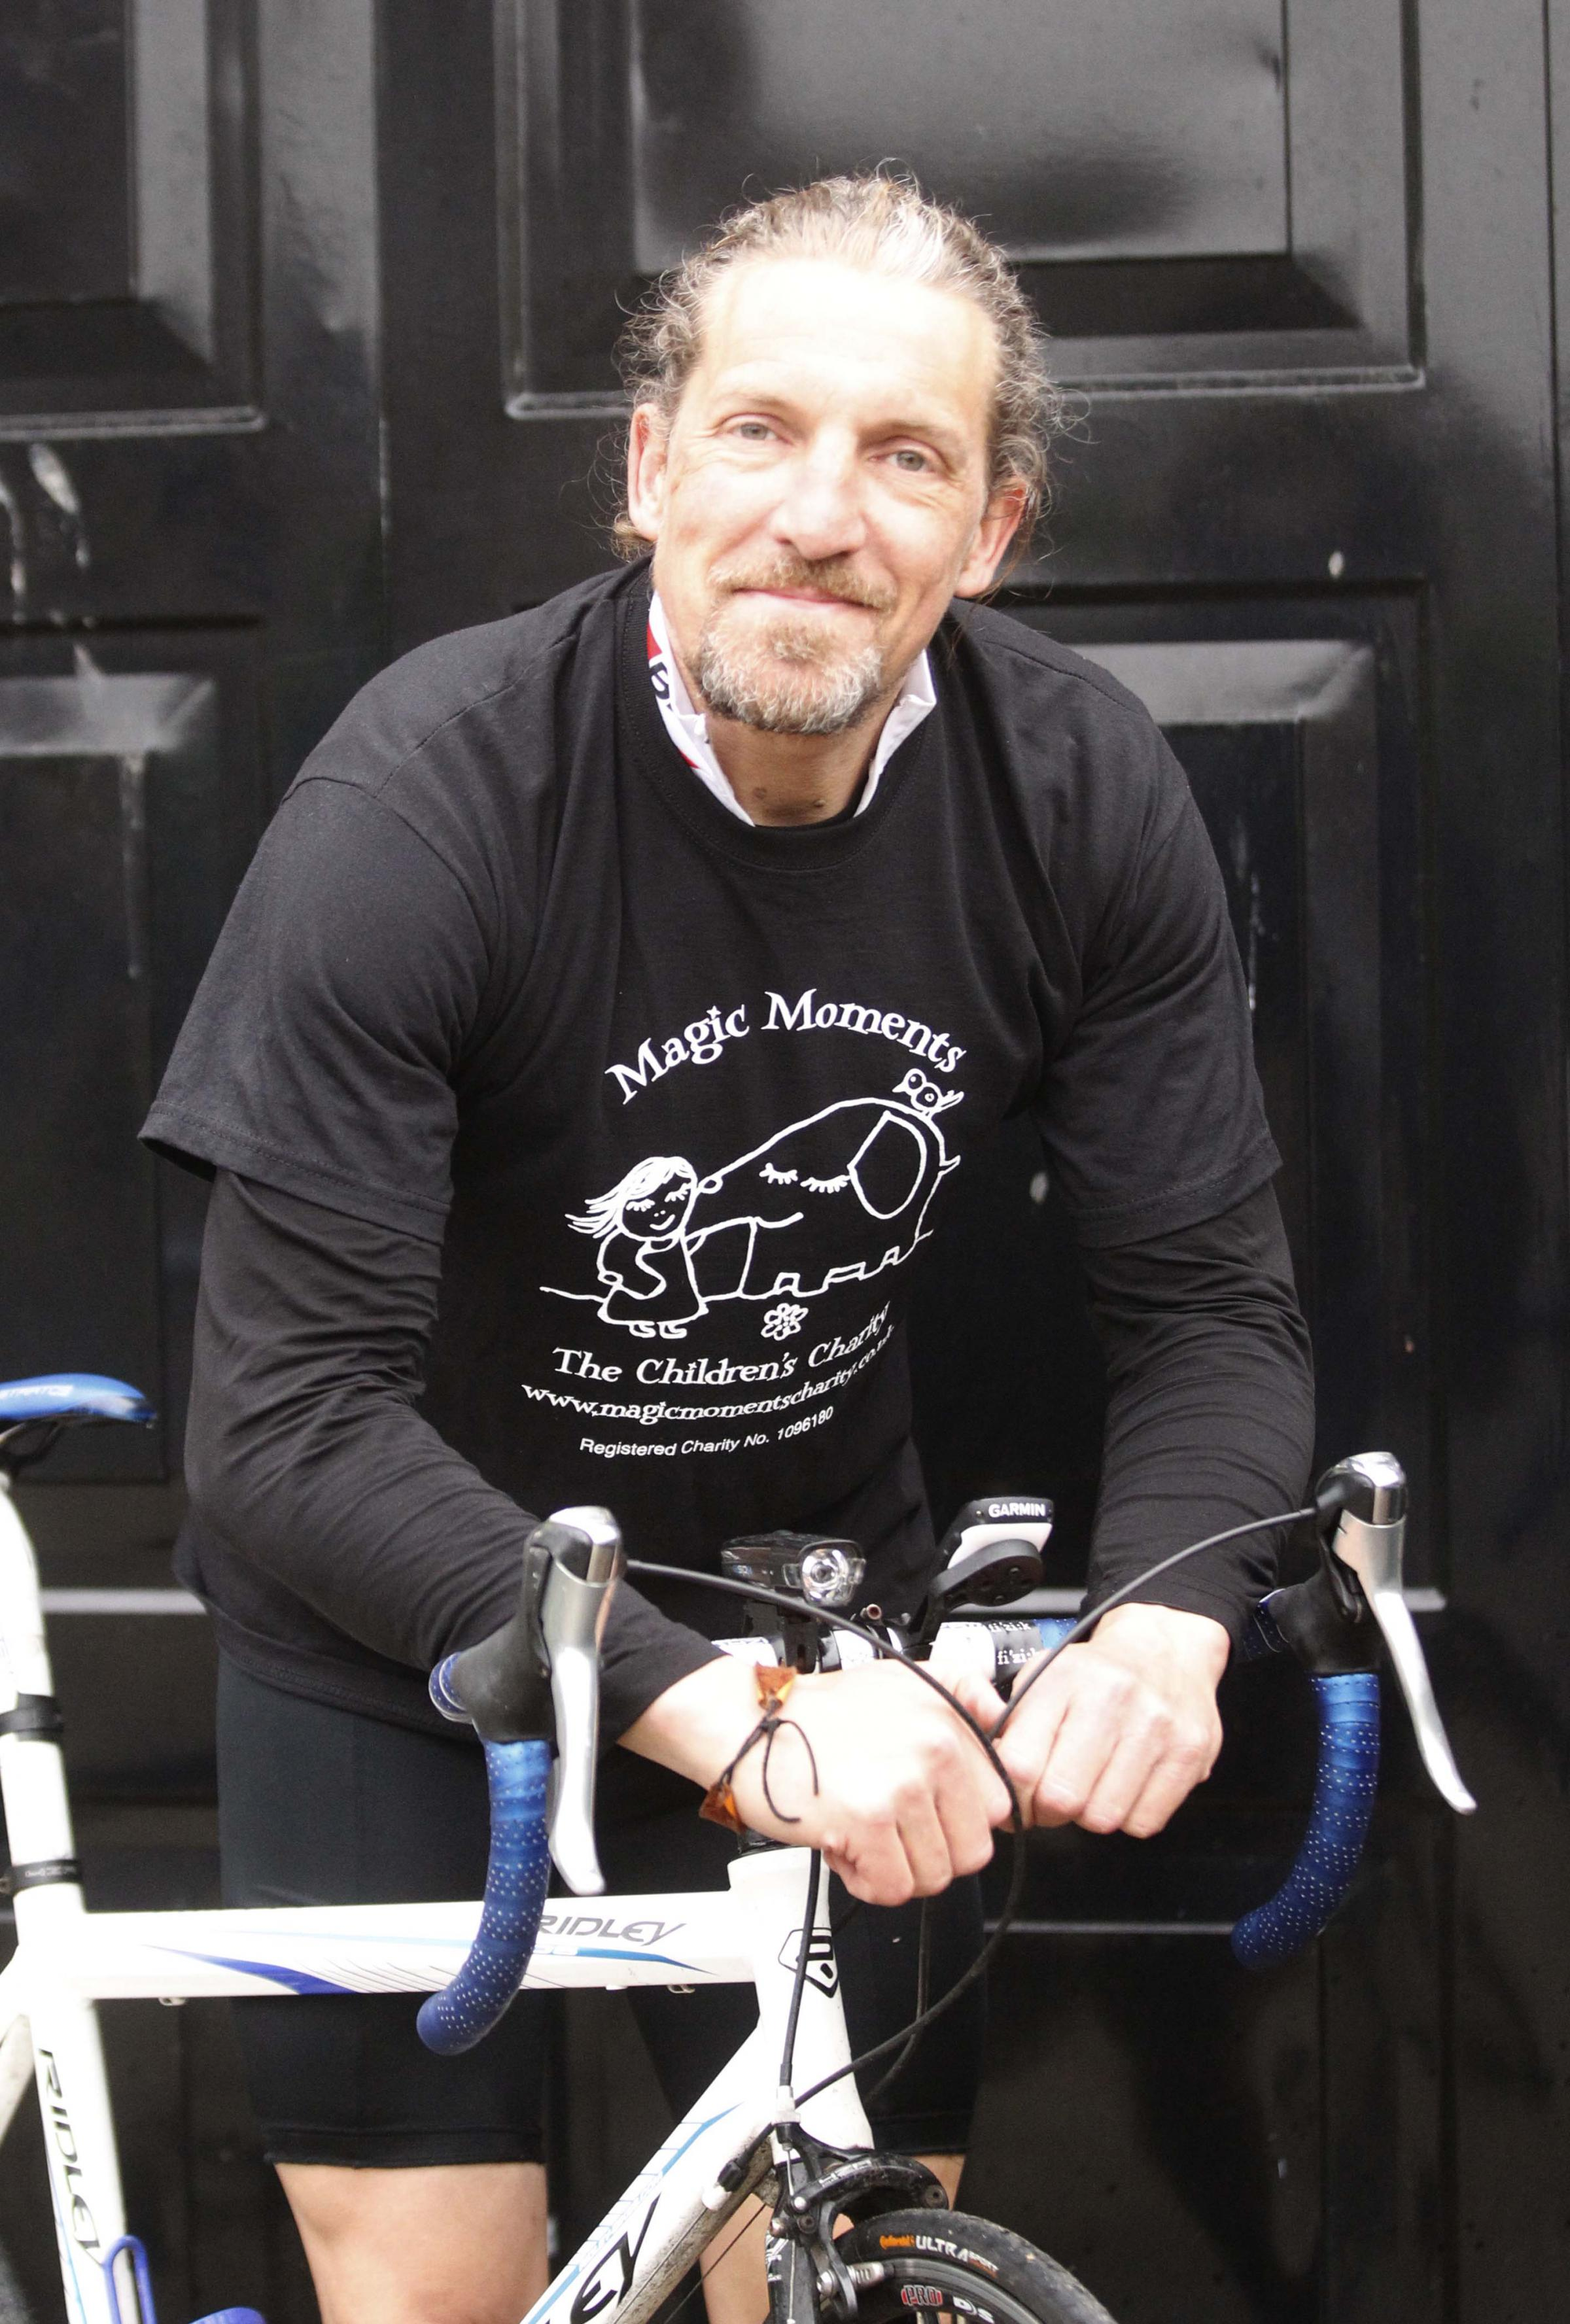 Ivan Chatton, who's preparing for a 1,000-mile bike ride.